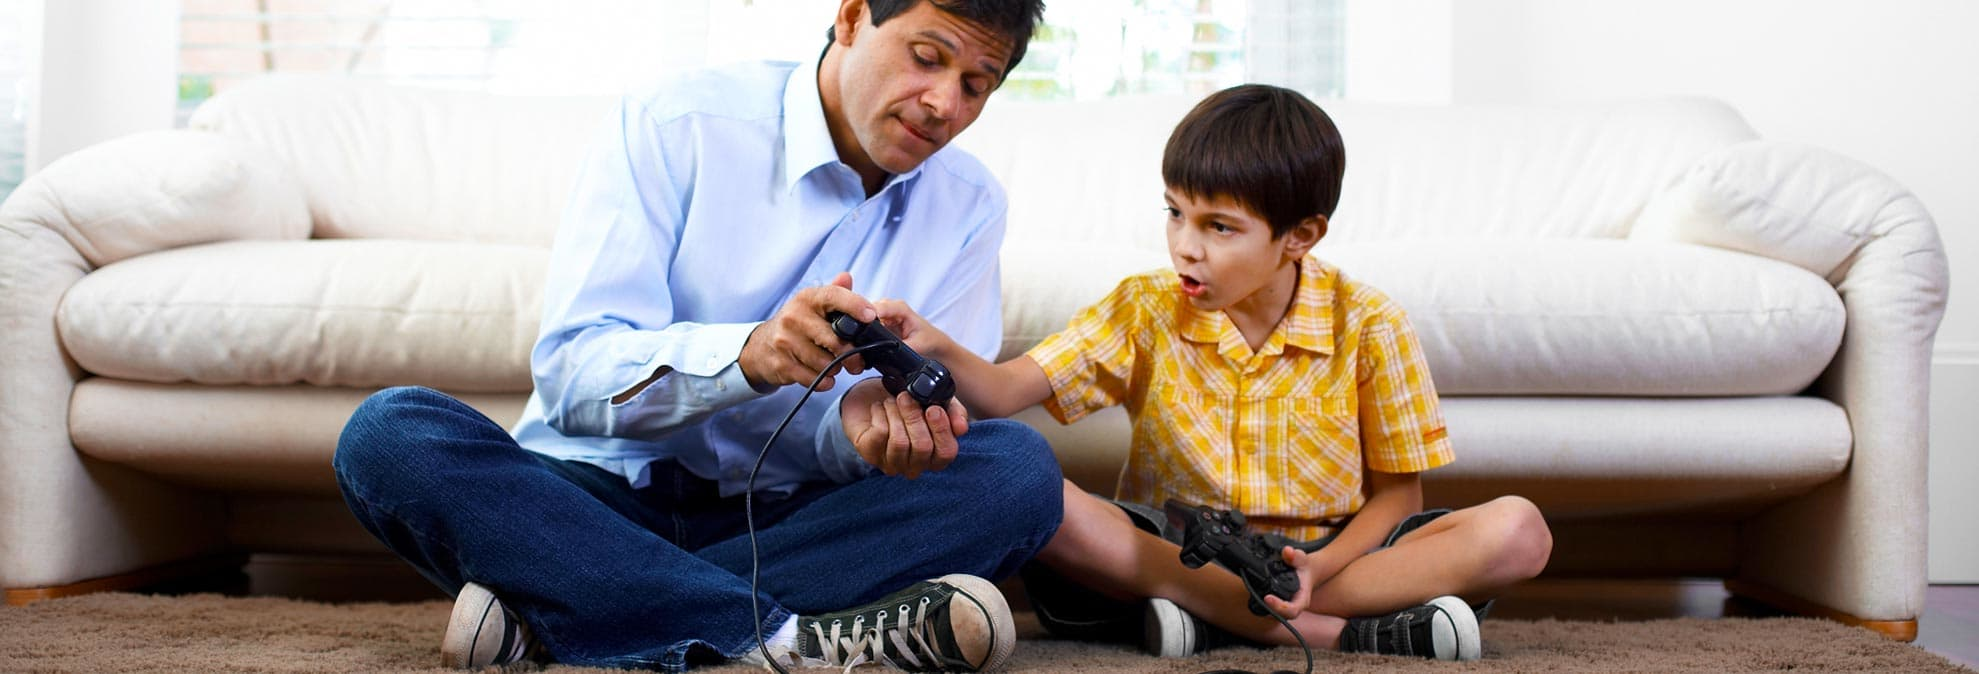 How To Play Video Games With Your Kids Consumer Reports